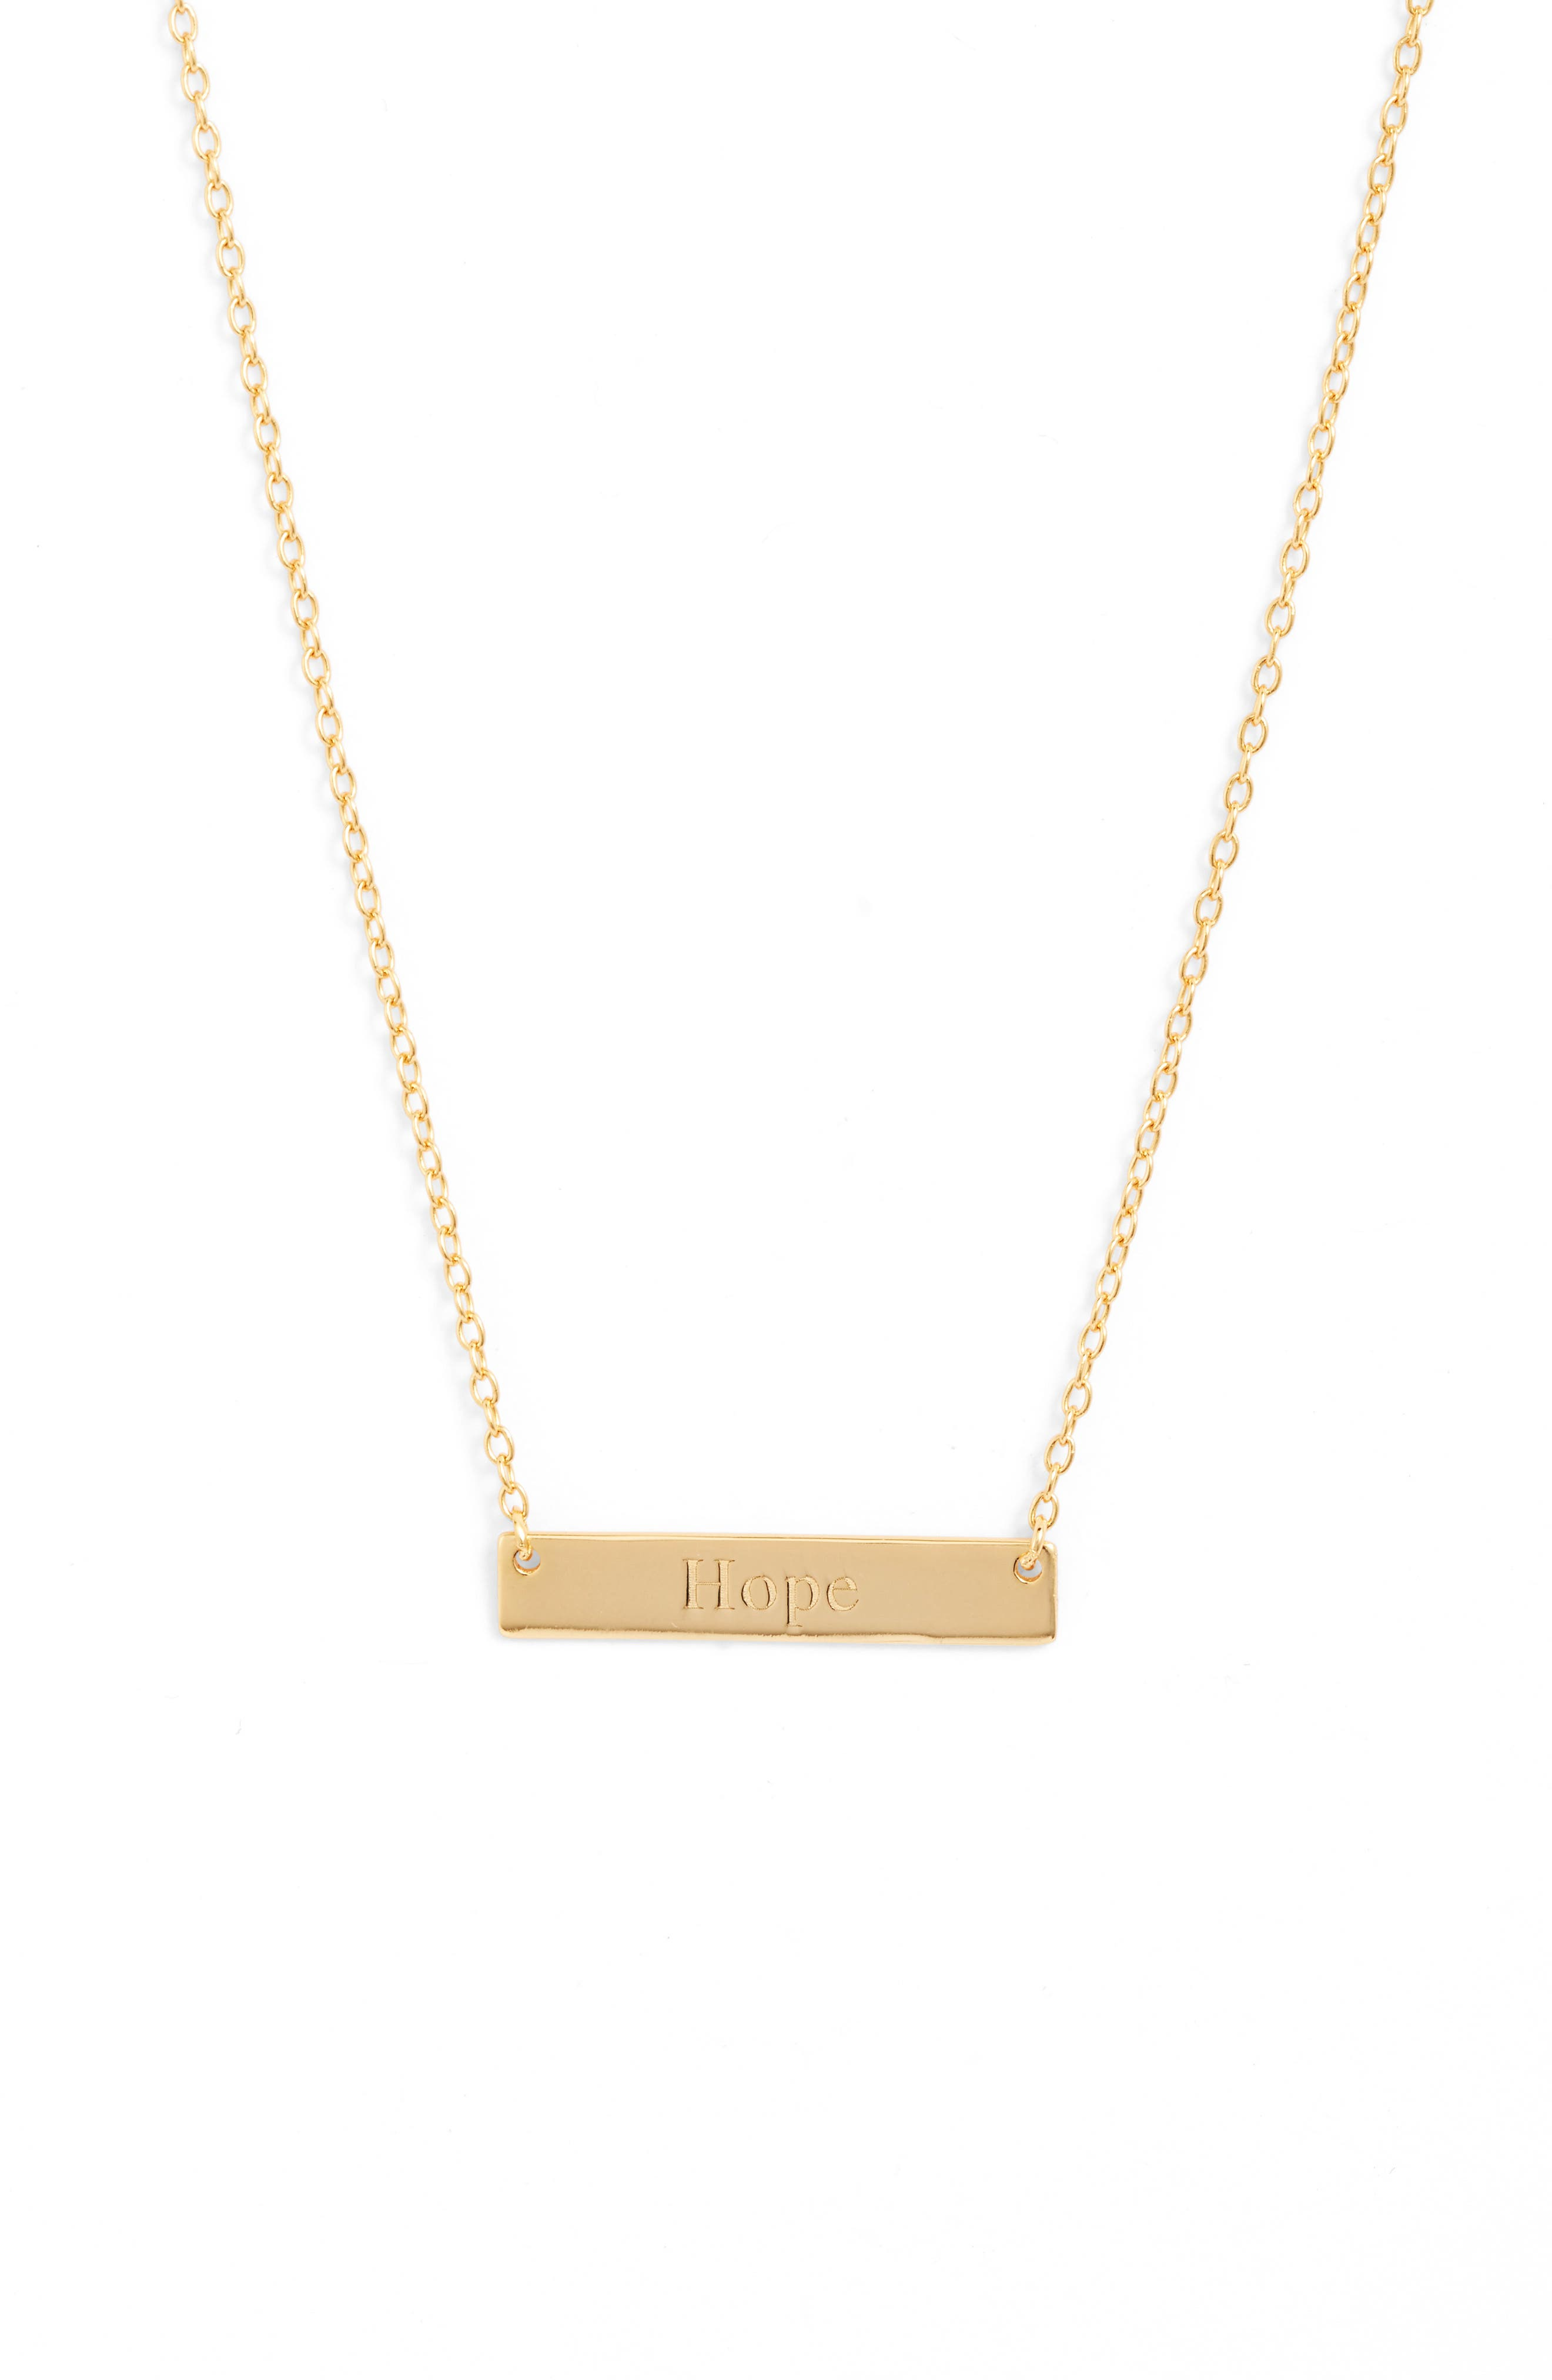 A simple design featuring a gleaming bar pendant embossed with an inspiring message defines this understated necklace. Style Name: Sterling Forever Hope Bar Pendant Necklace. Style Number: 5904767. Available in stores.